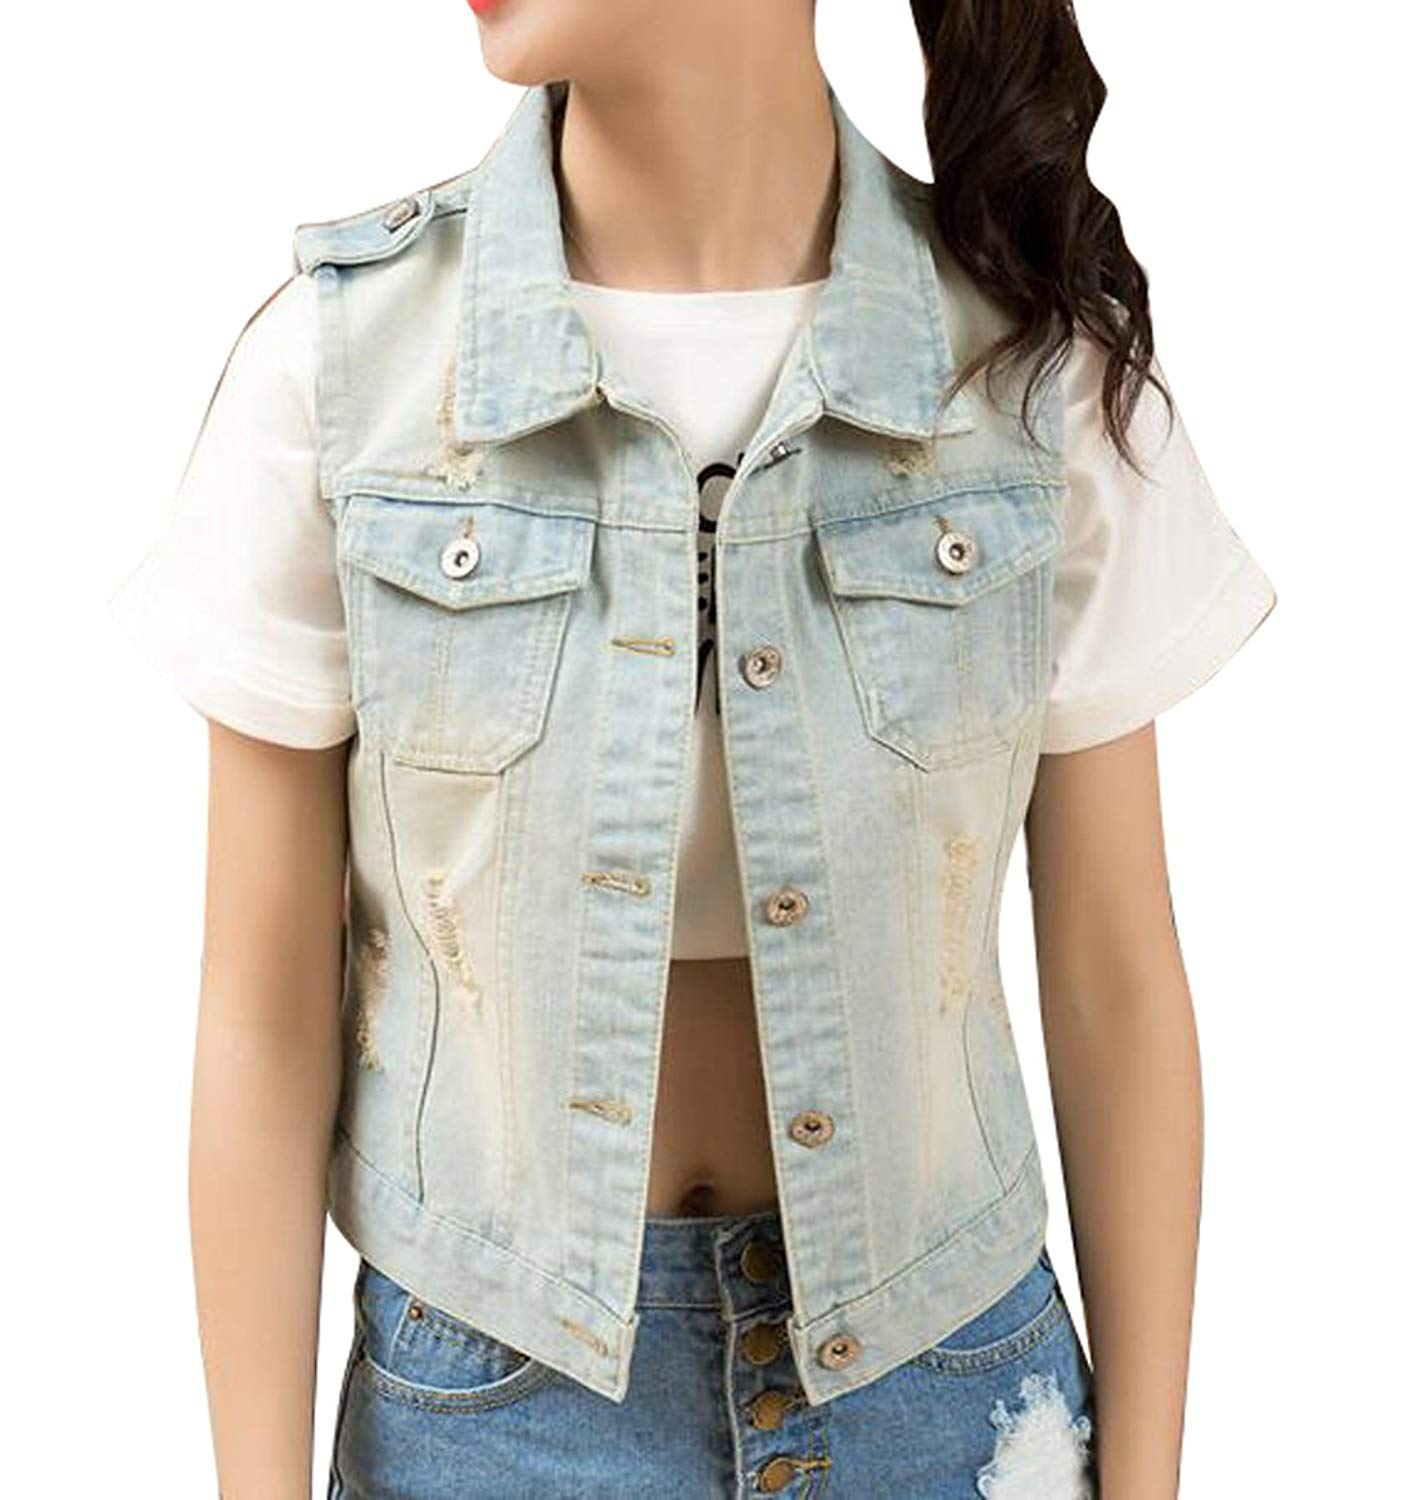 73e91a42cee41 Get Quotations · Suncolor8 Womens Casual Fashion Ripped Destroyed Sleeveless  Slim Fit Denim Vest Sleeveless Jean Jacket Gilet